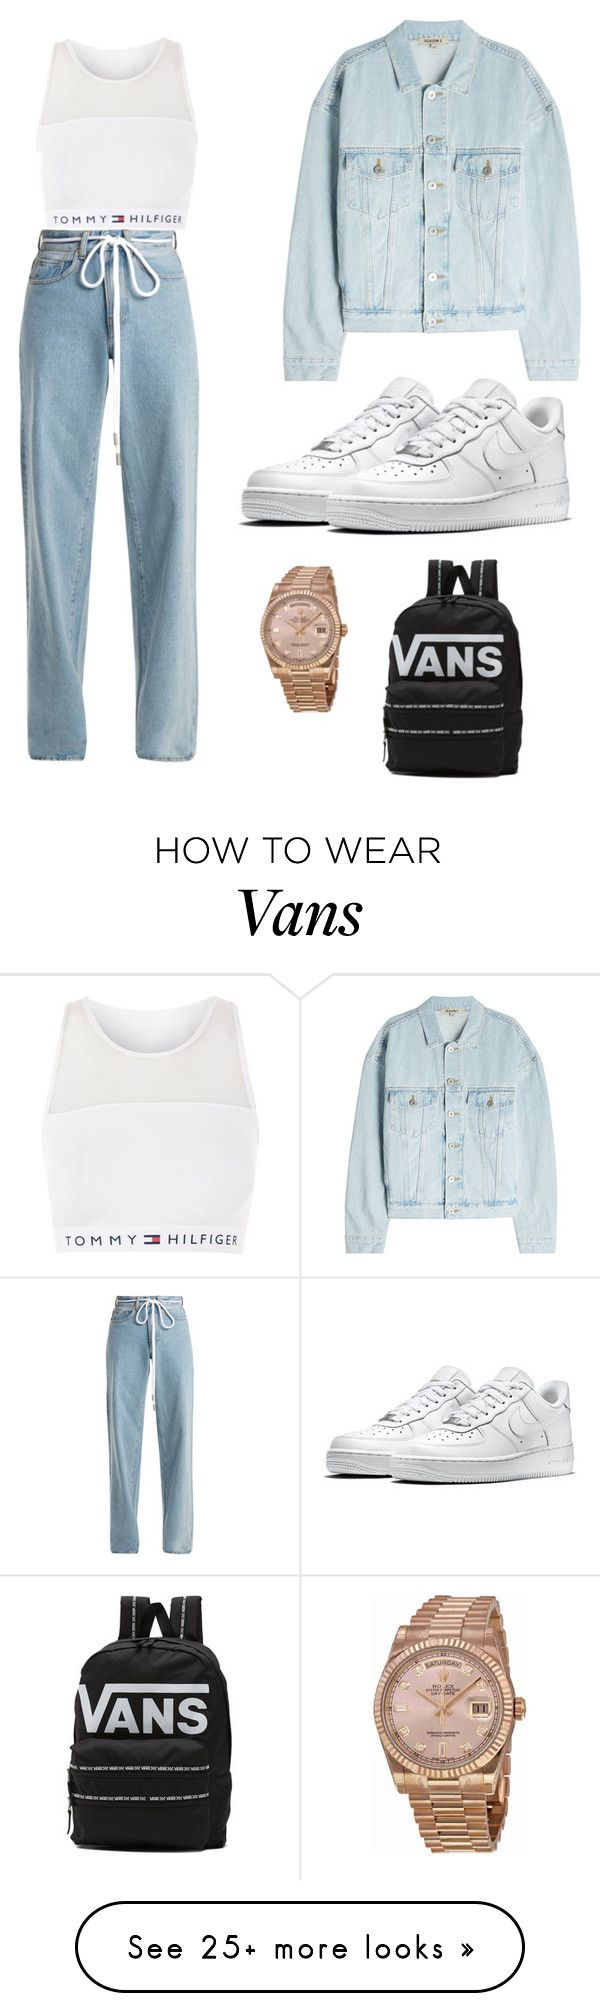 """""""chill vibes"""" by alejandra06102002 on Polyvore featuring Tommy Hilfiger, Off-White, NIKE, Yeezy by Kanye West, Rolex and Vans"""